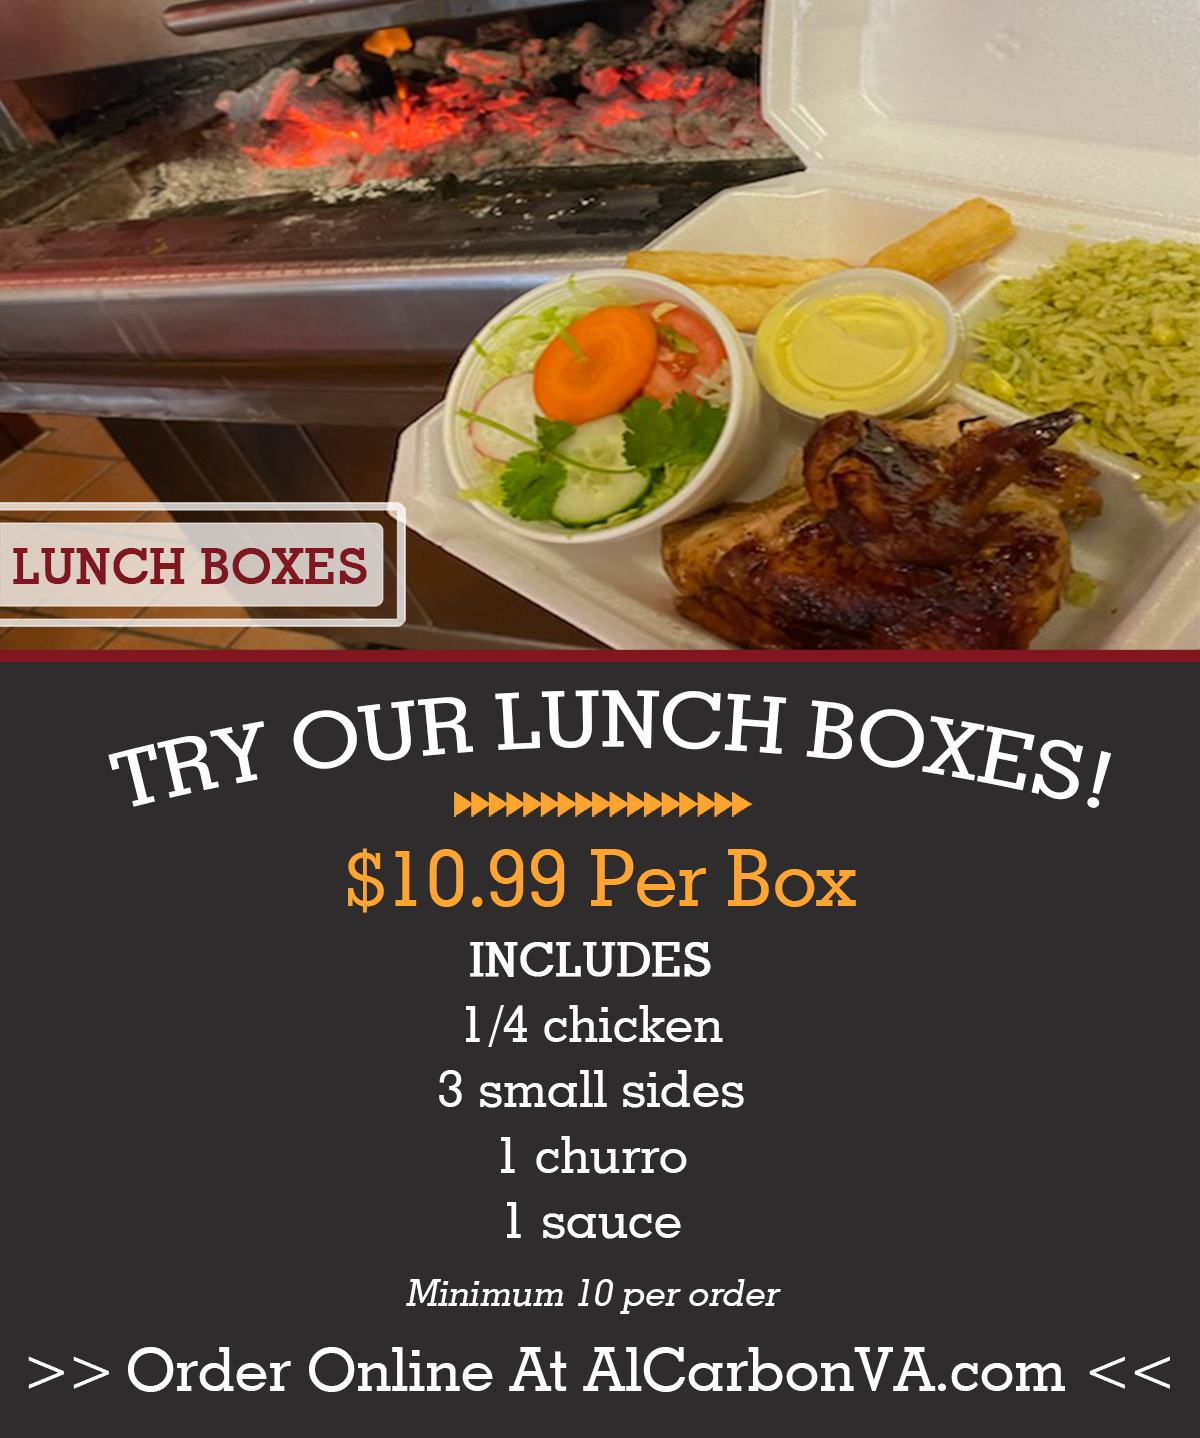 Try Our Boxed Lunches! $10.99 per box Includes 1/4 chicken 3 small sides 1 churro 1 sauce Minimum 10 per order